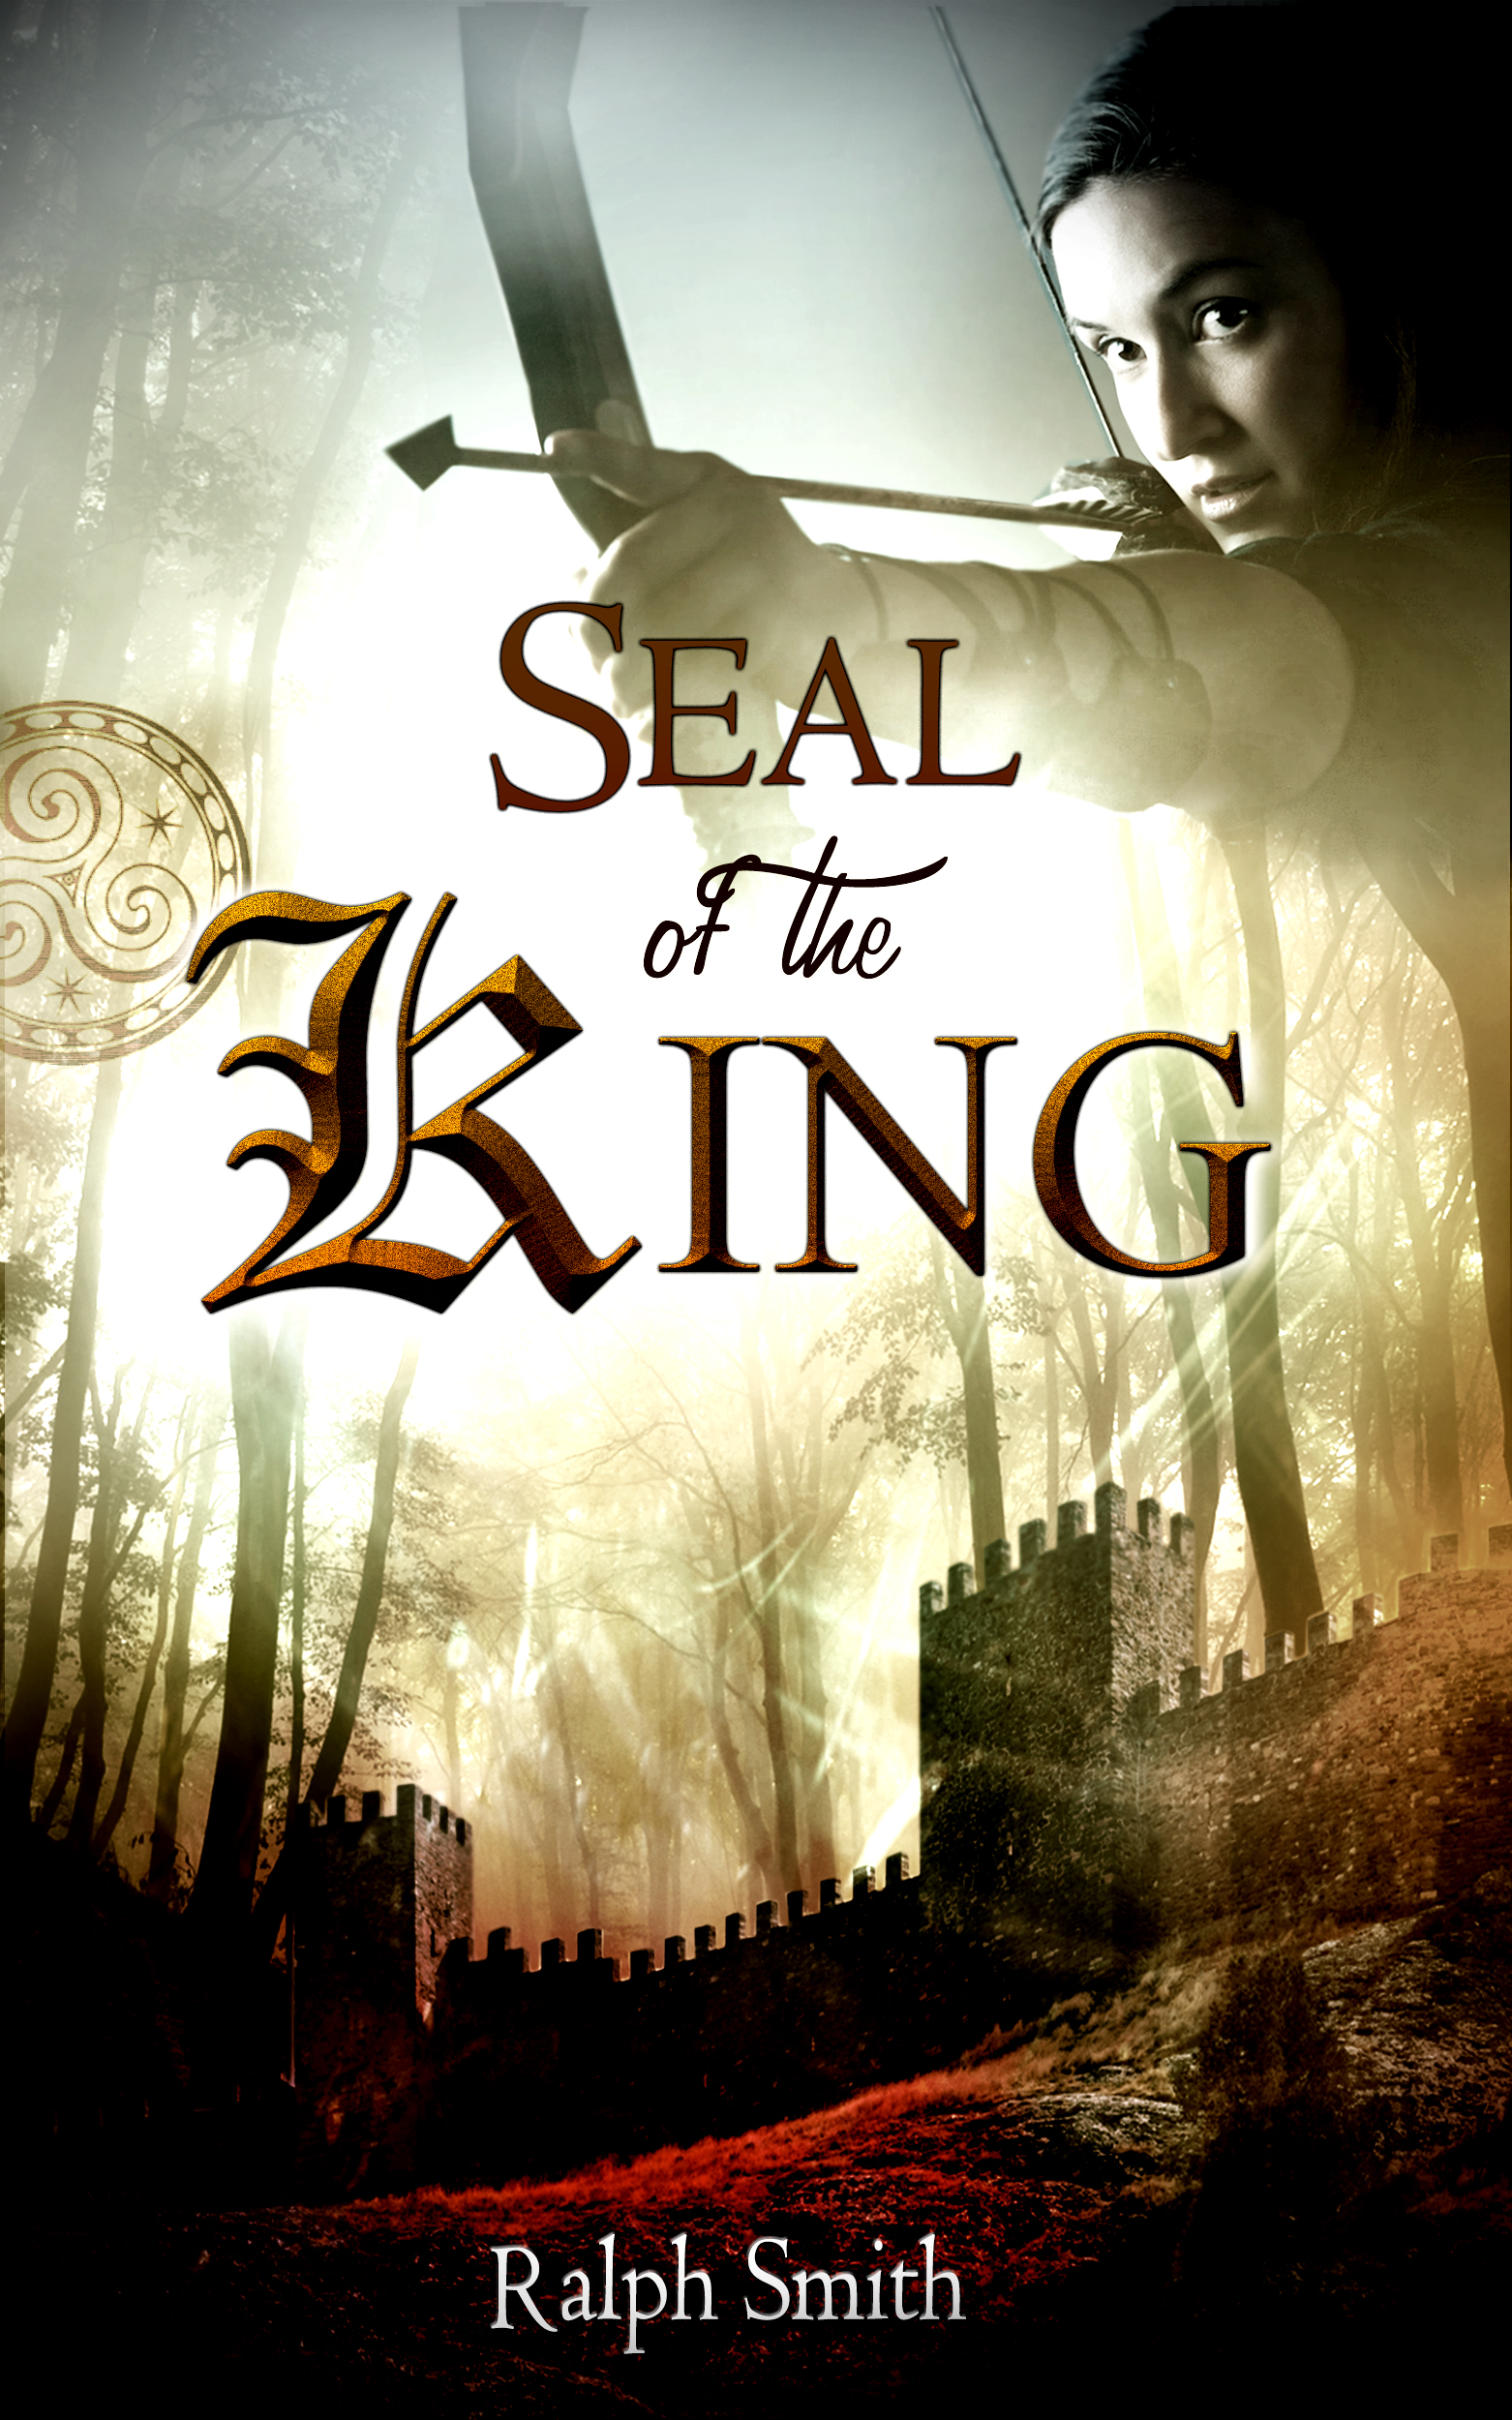 5 of 5 stars Seal of the King is a thrilling action adventure and love story